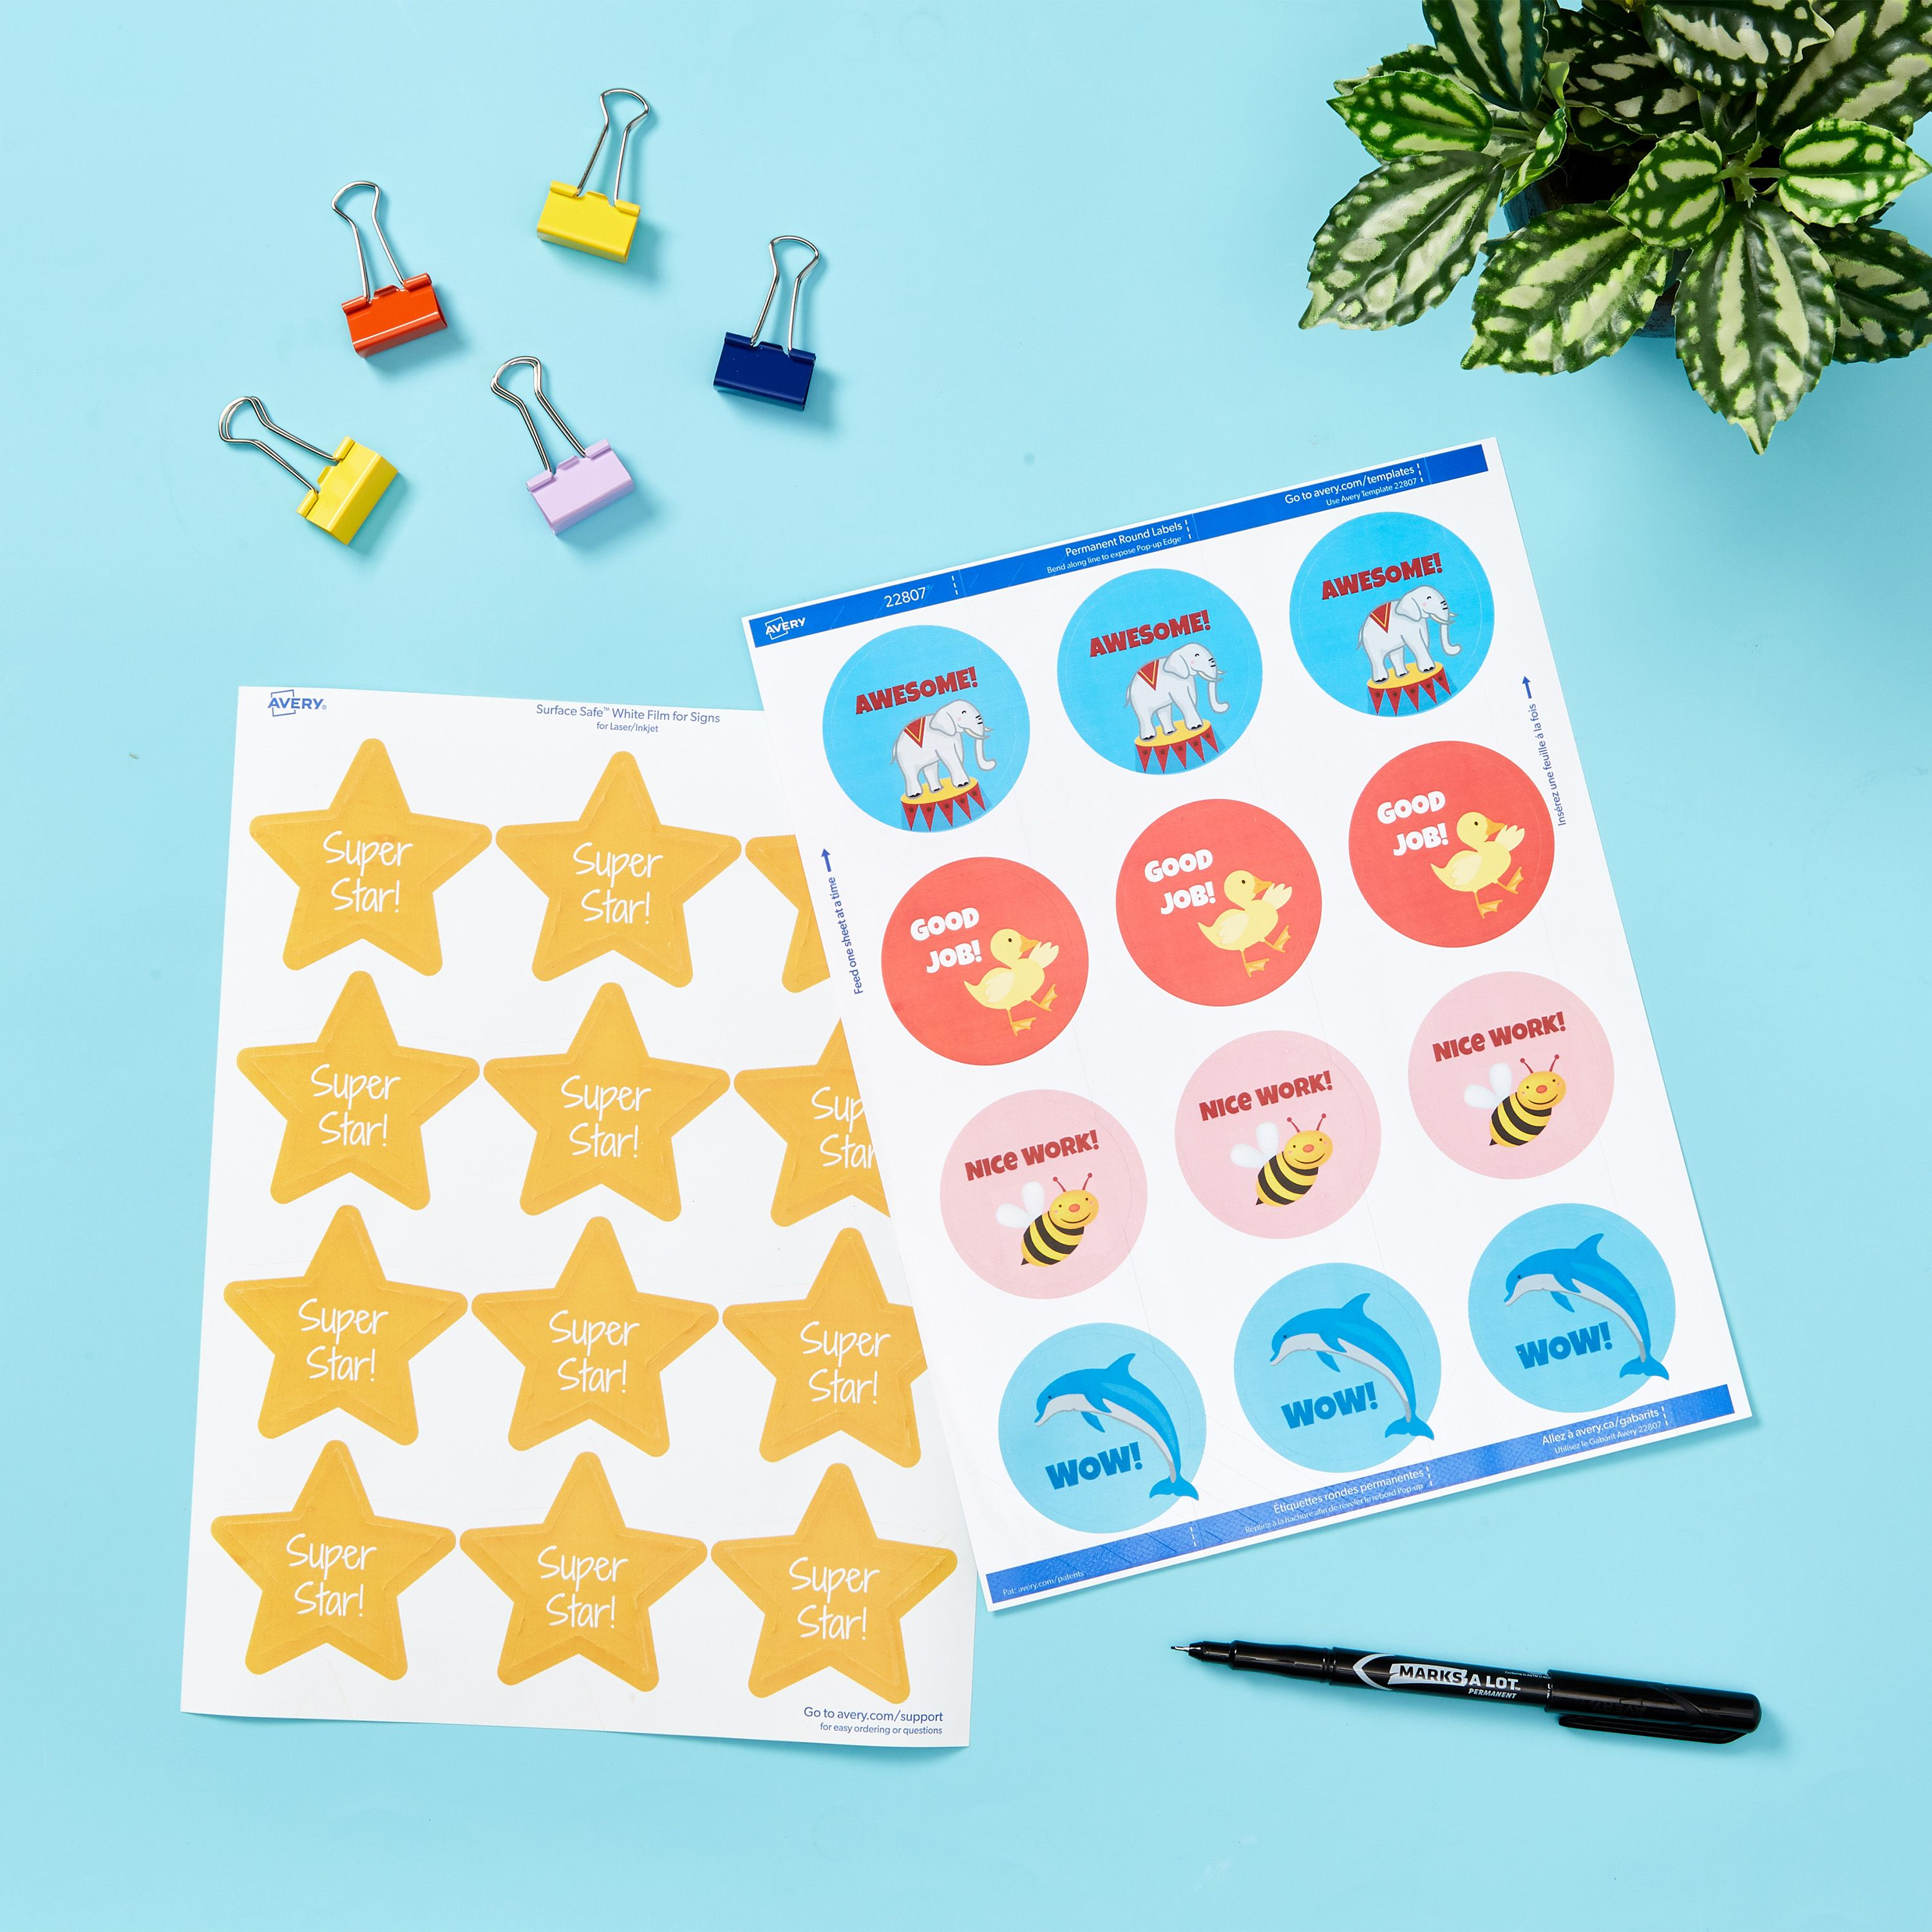 Custom Teacher Grading Stickers And Free Template Downloads In 2021 Templates Free Design Teacher Stickers Template Free